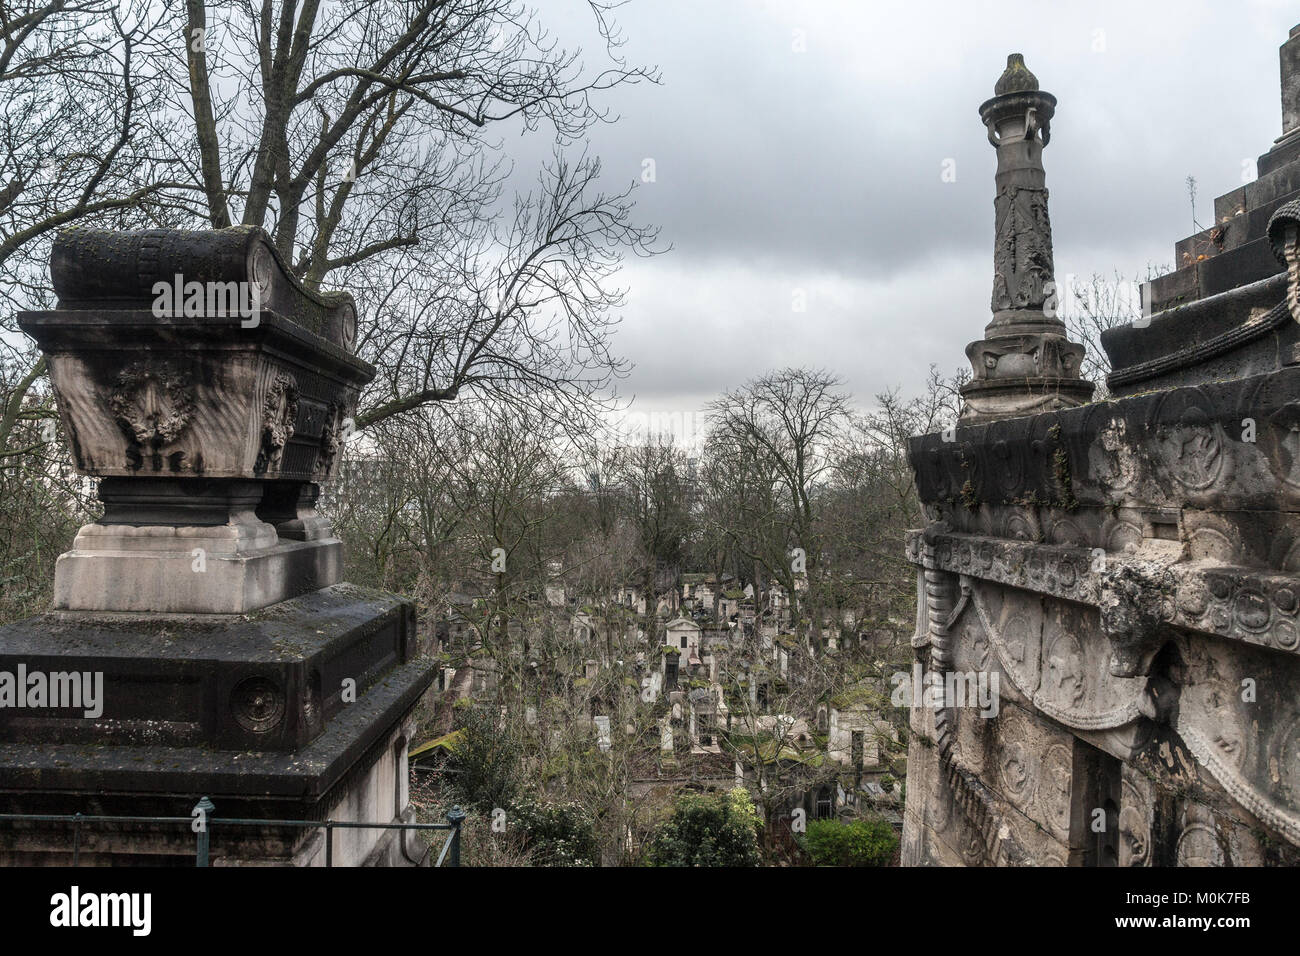 Graves from the 19th century in Pere Lachaise Cemetery in Paris, France, during a cold cloudy winter afternoon. - Stock Image